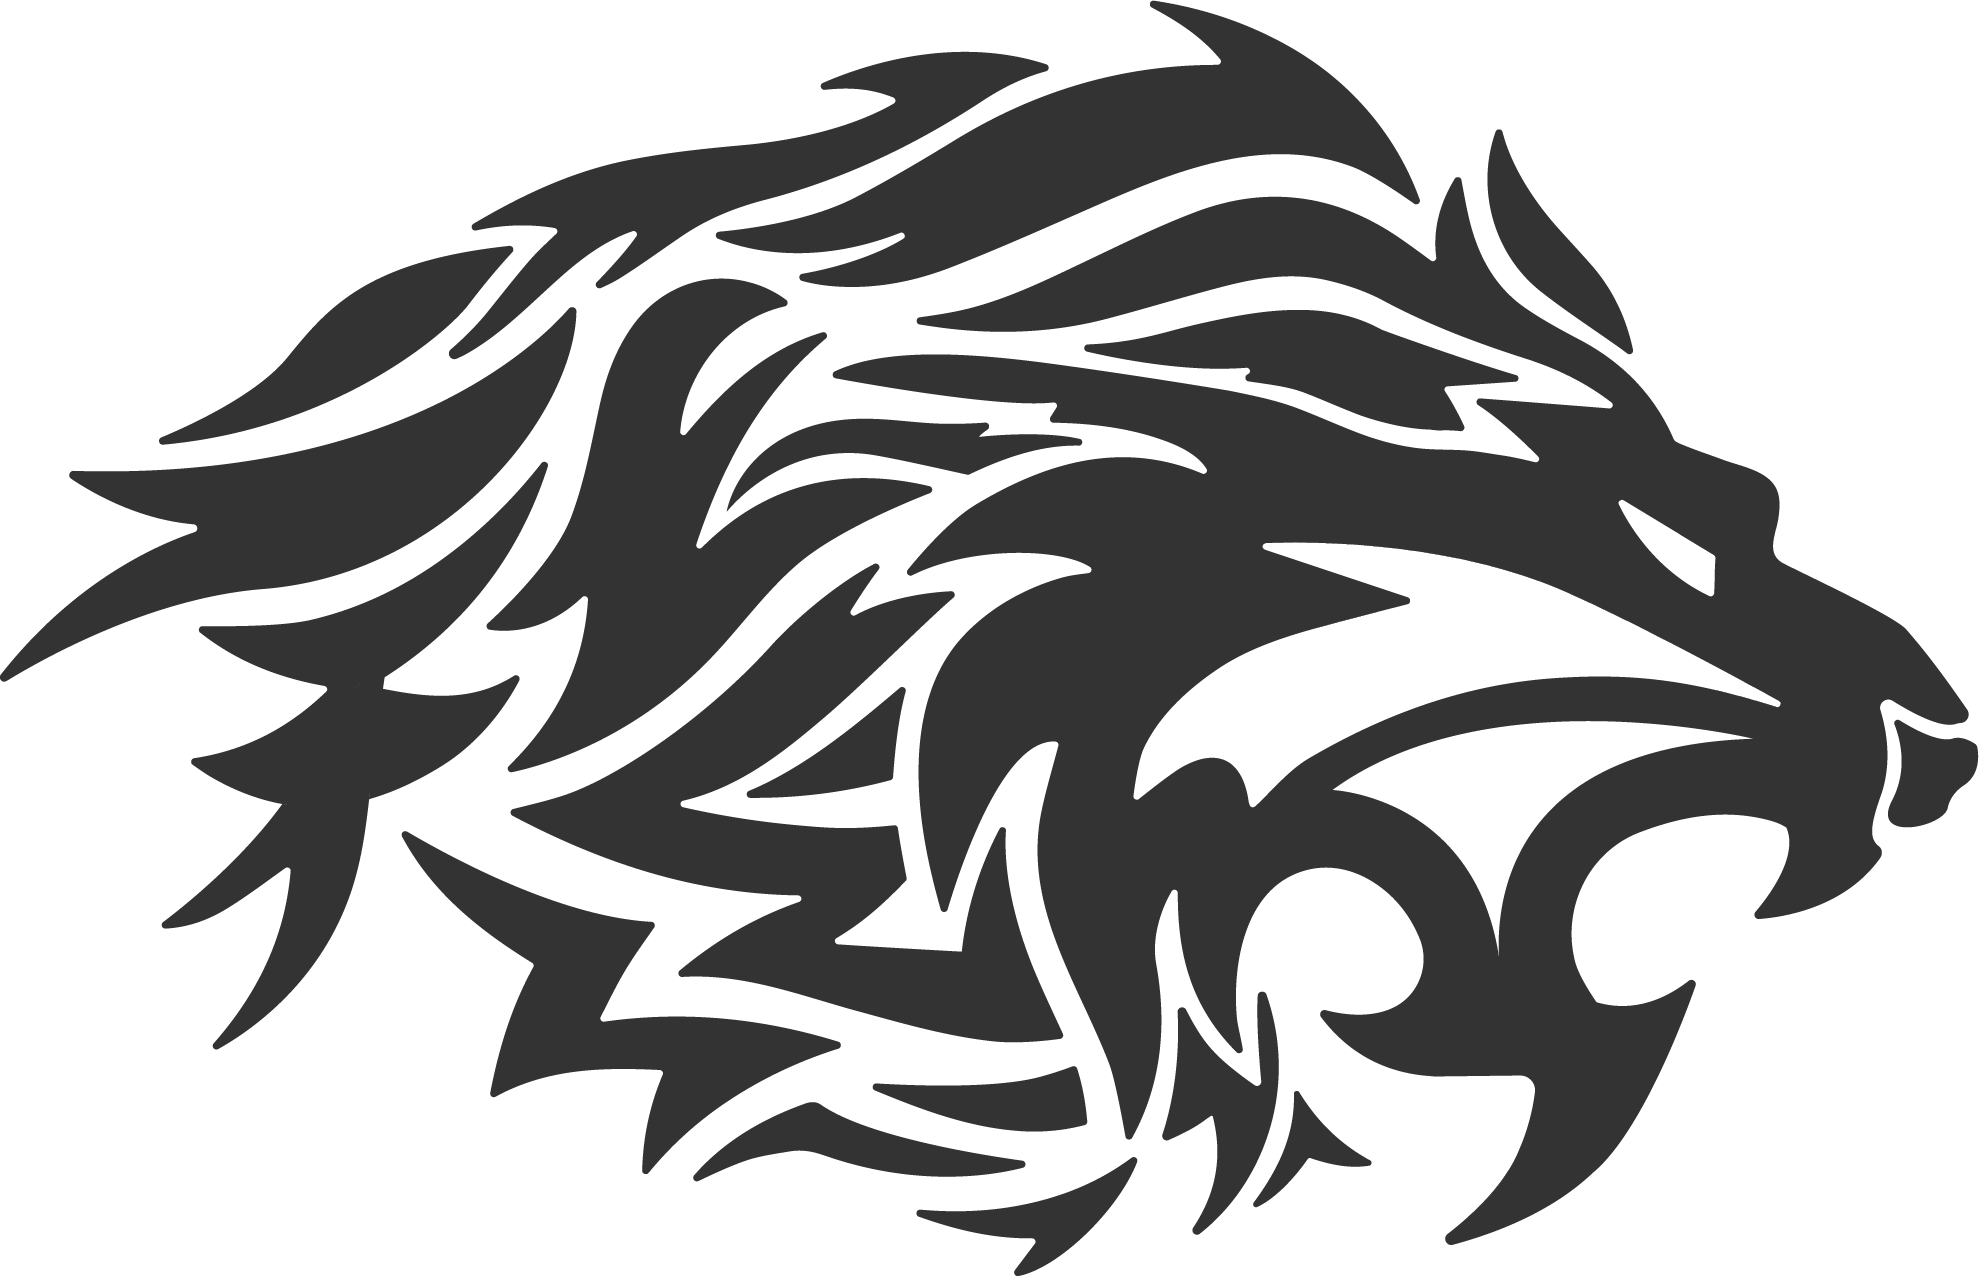 banner transparent download Lion free on dumielauxepices. Tattoo clipart